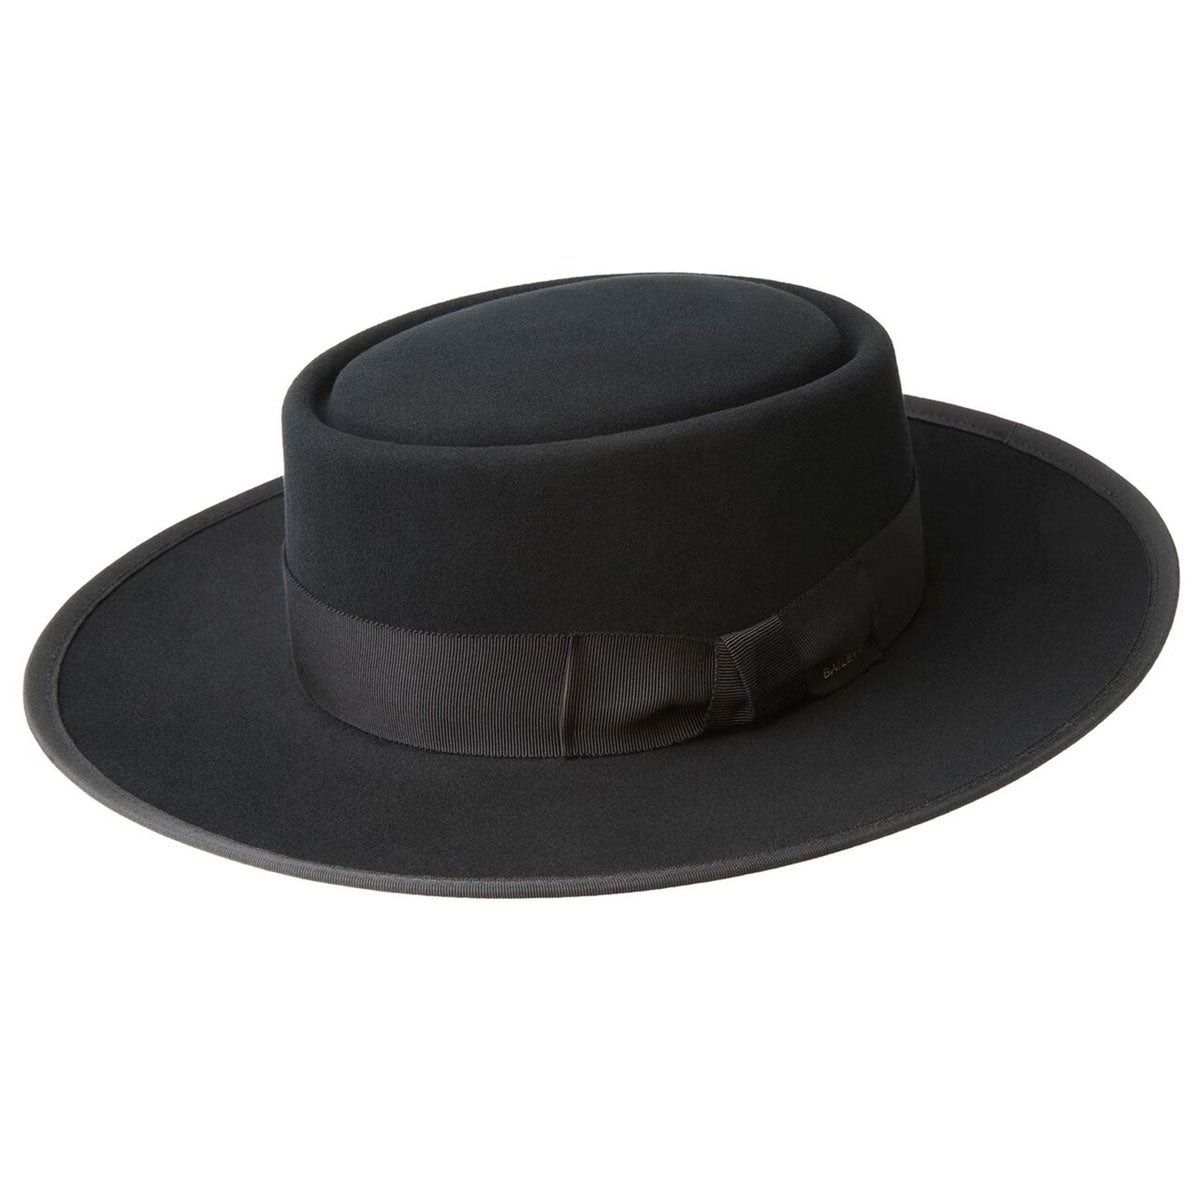 1940s Style Mens Hats Cosgrove Pork Pie $125.00 AT vintagedancer.com